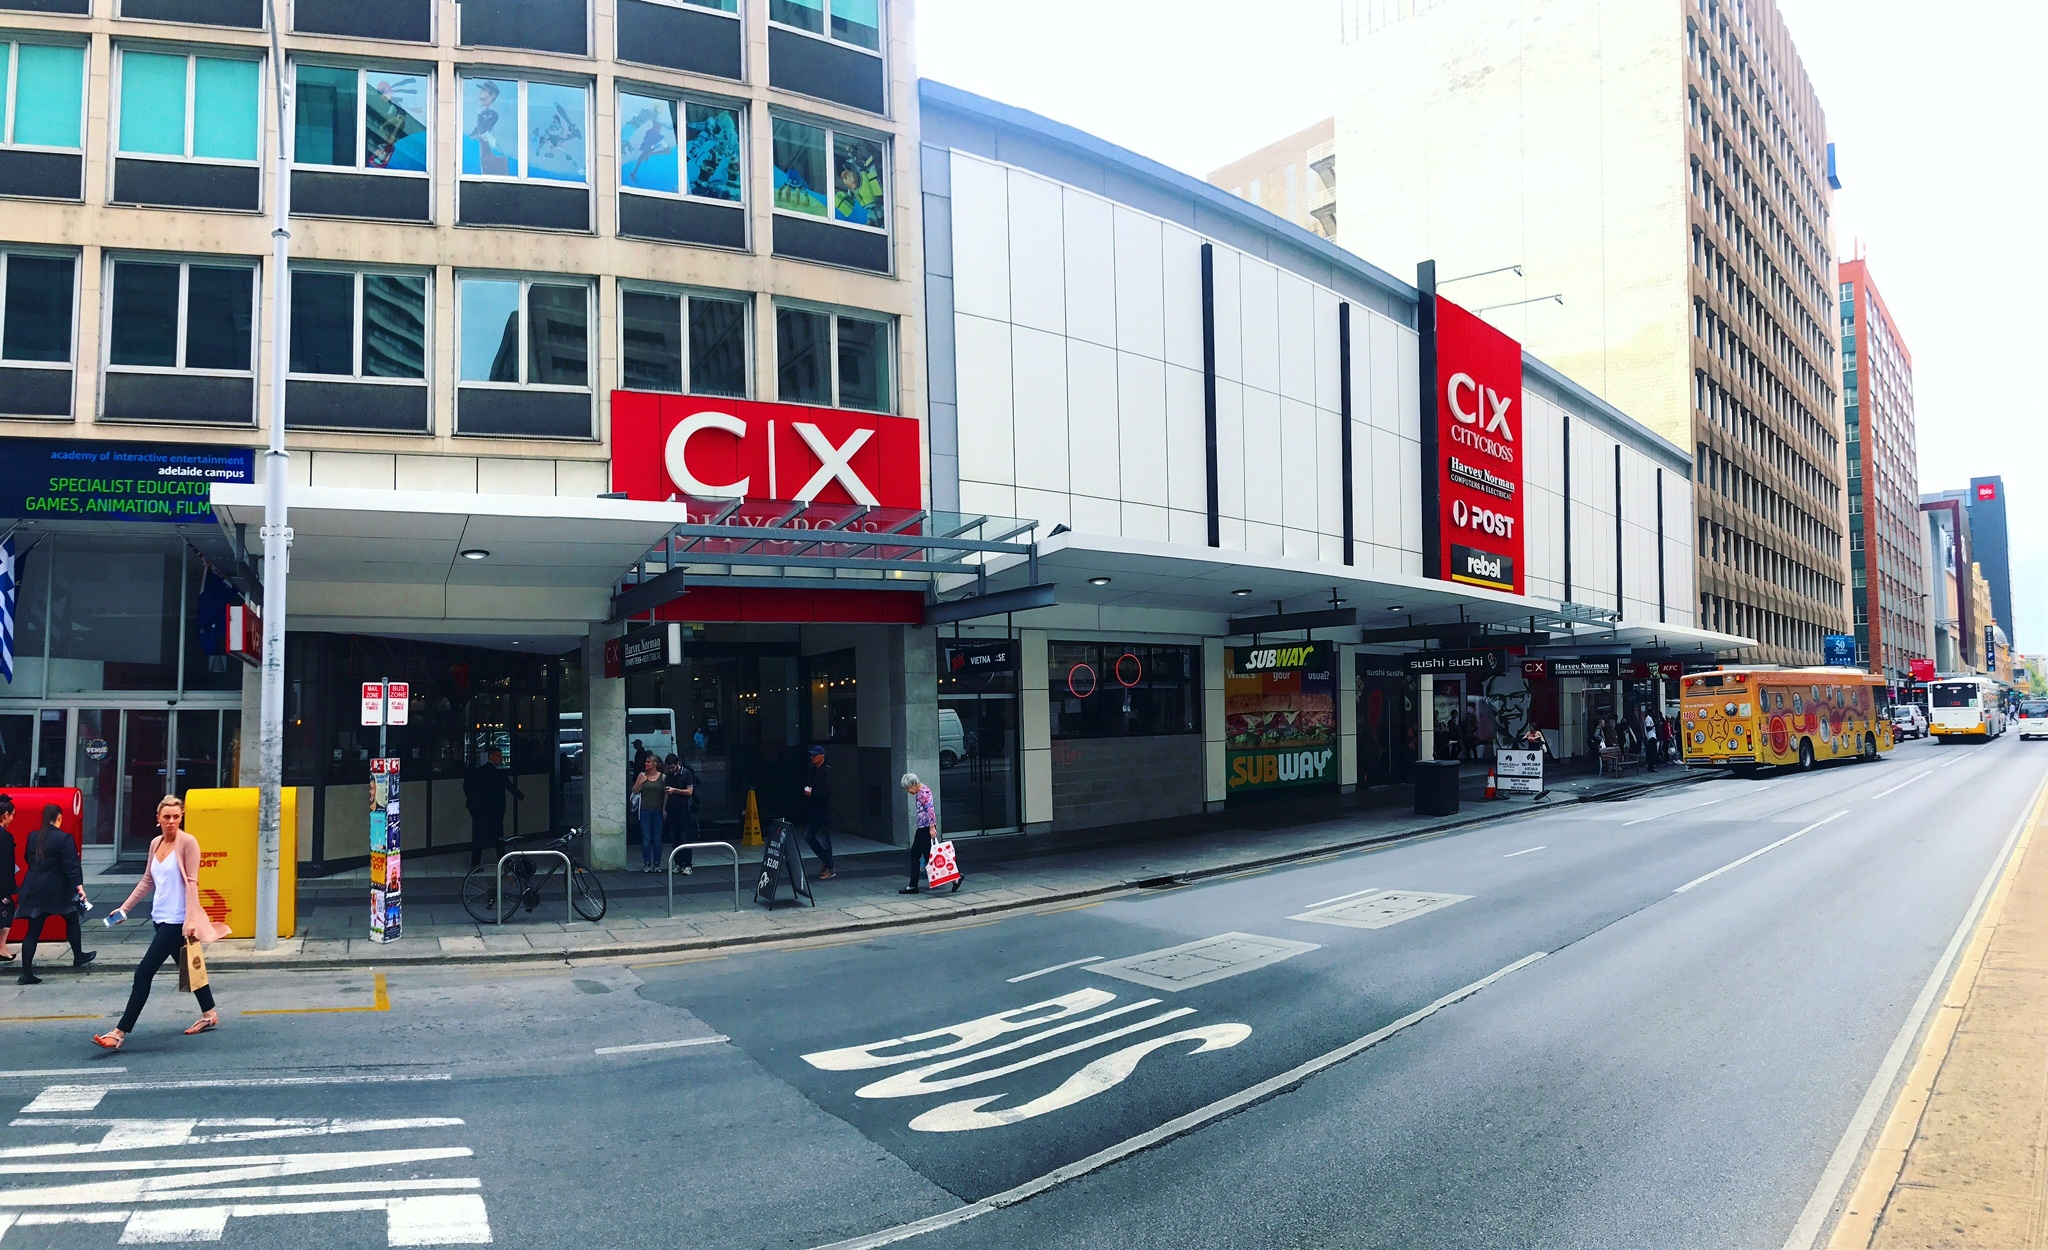 City Cross – Food, Beverage and Retail Opportunities in prime CBD location!